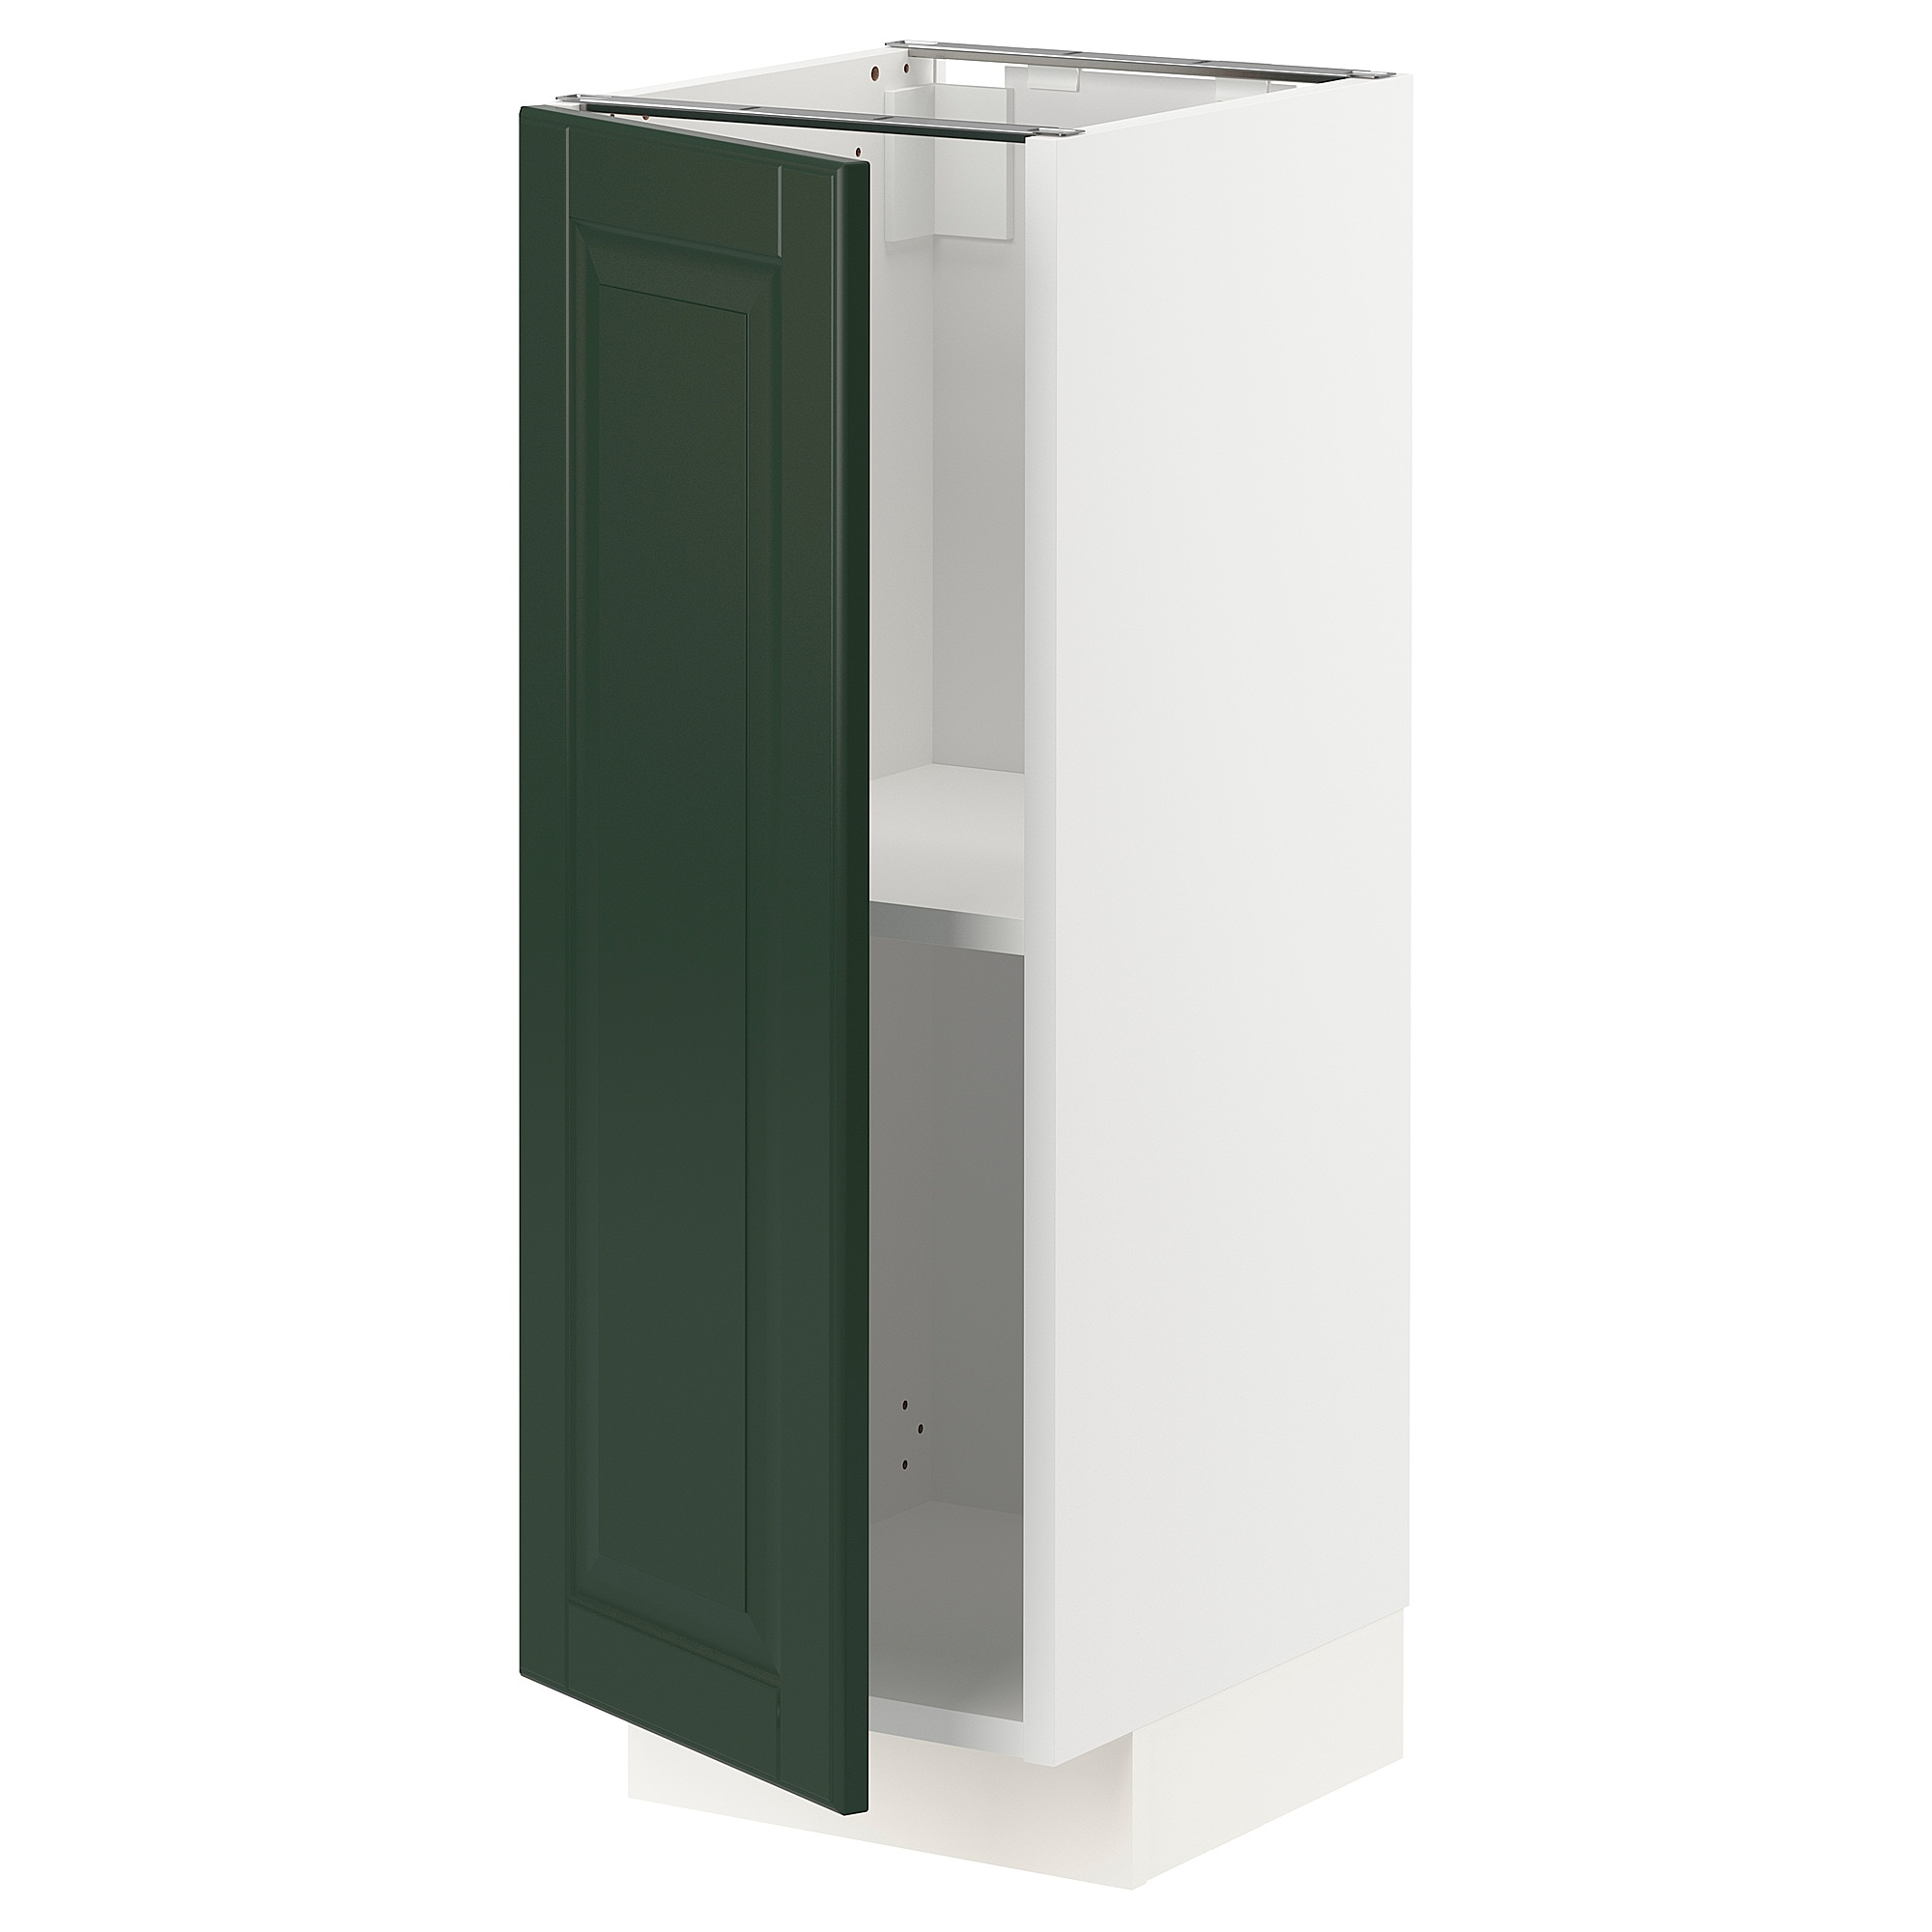 Base cabinet with shelves METOD white, Bodbyn dark green